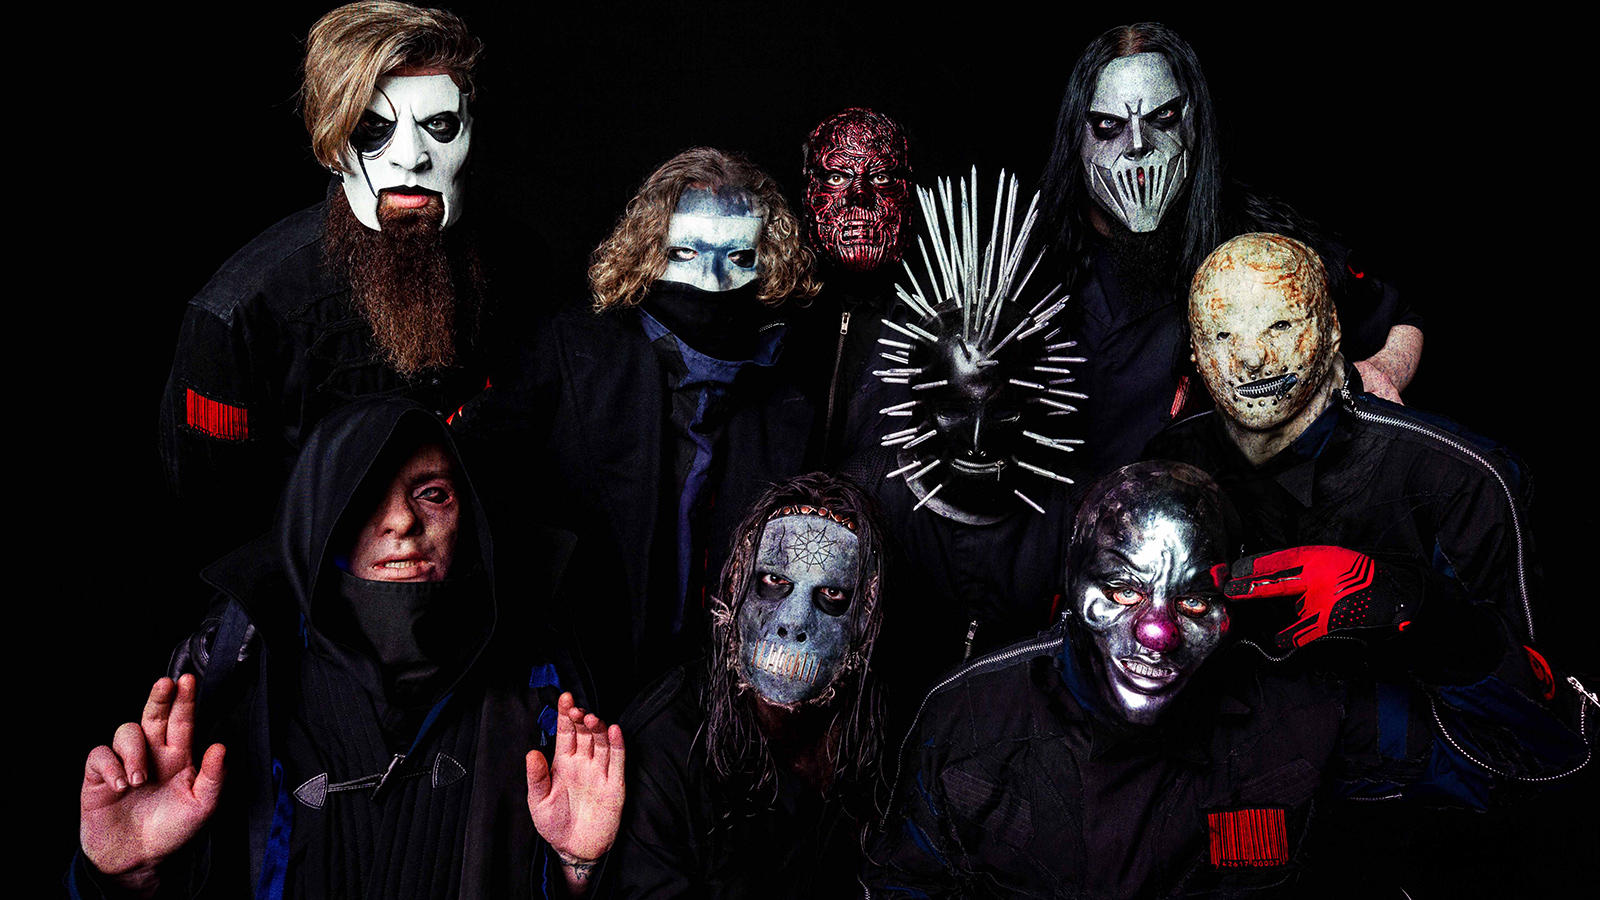 Slipknot's 'We Are Not Your Kind' Scores No. 1 Spot on Billboard 200 Chart